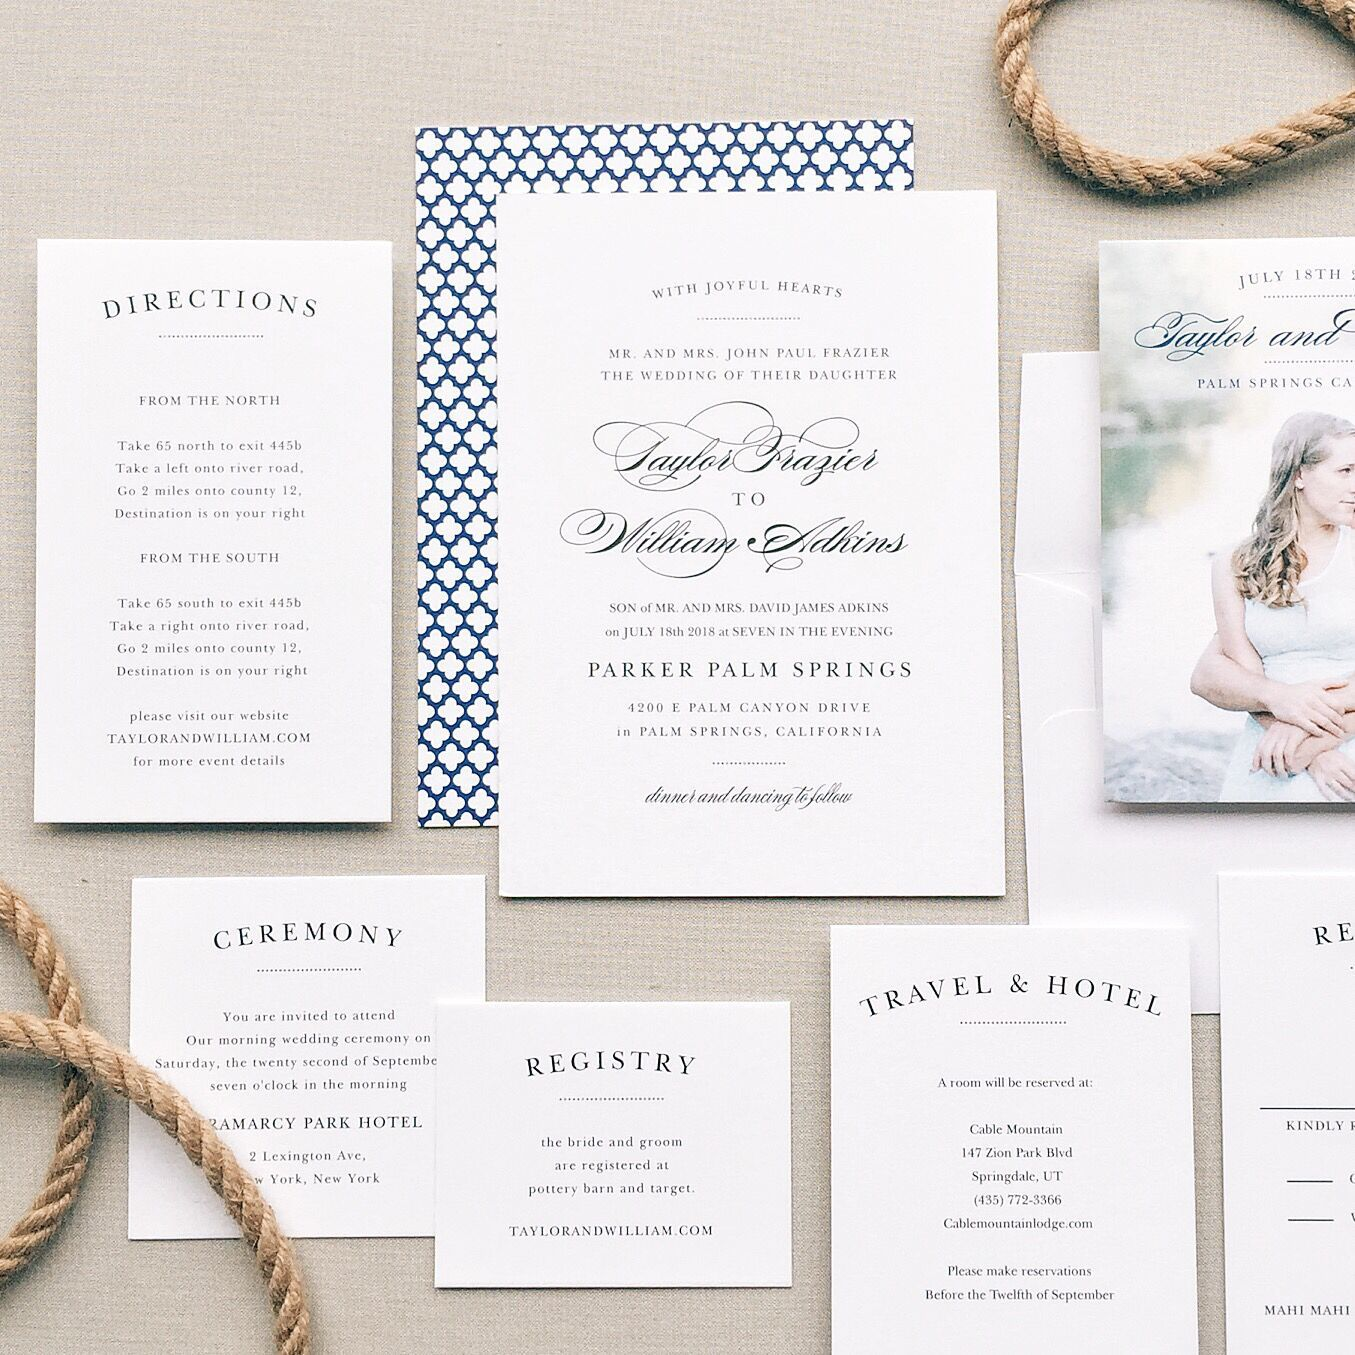 Invitations Made Easy (& Pretty!) - Fashion Chalet by Erika Marie